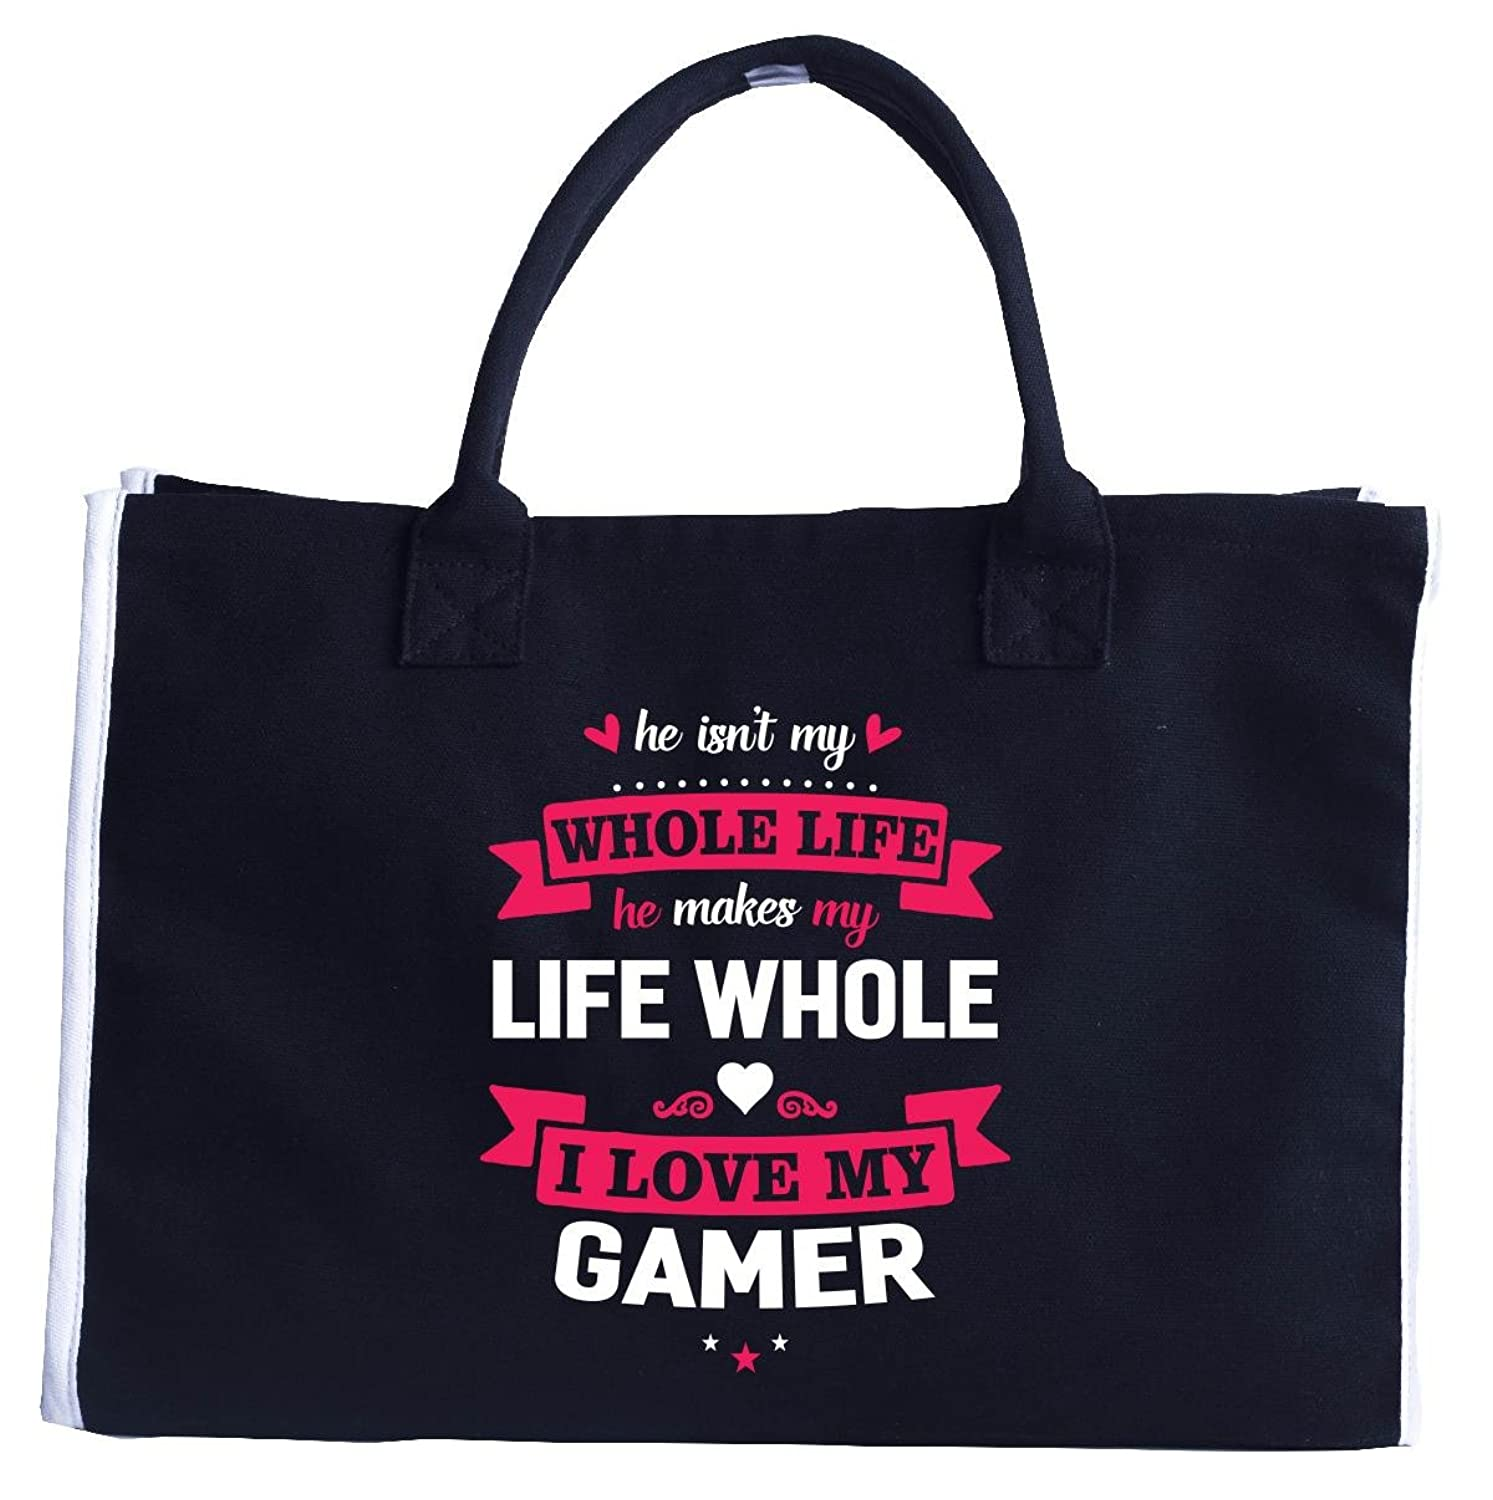 I Love My Gamer. Cool Gift - Fashion Customized Tote Bag